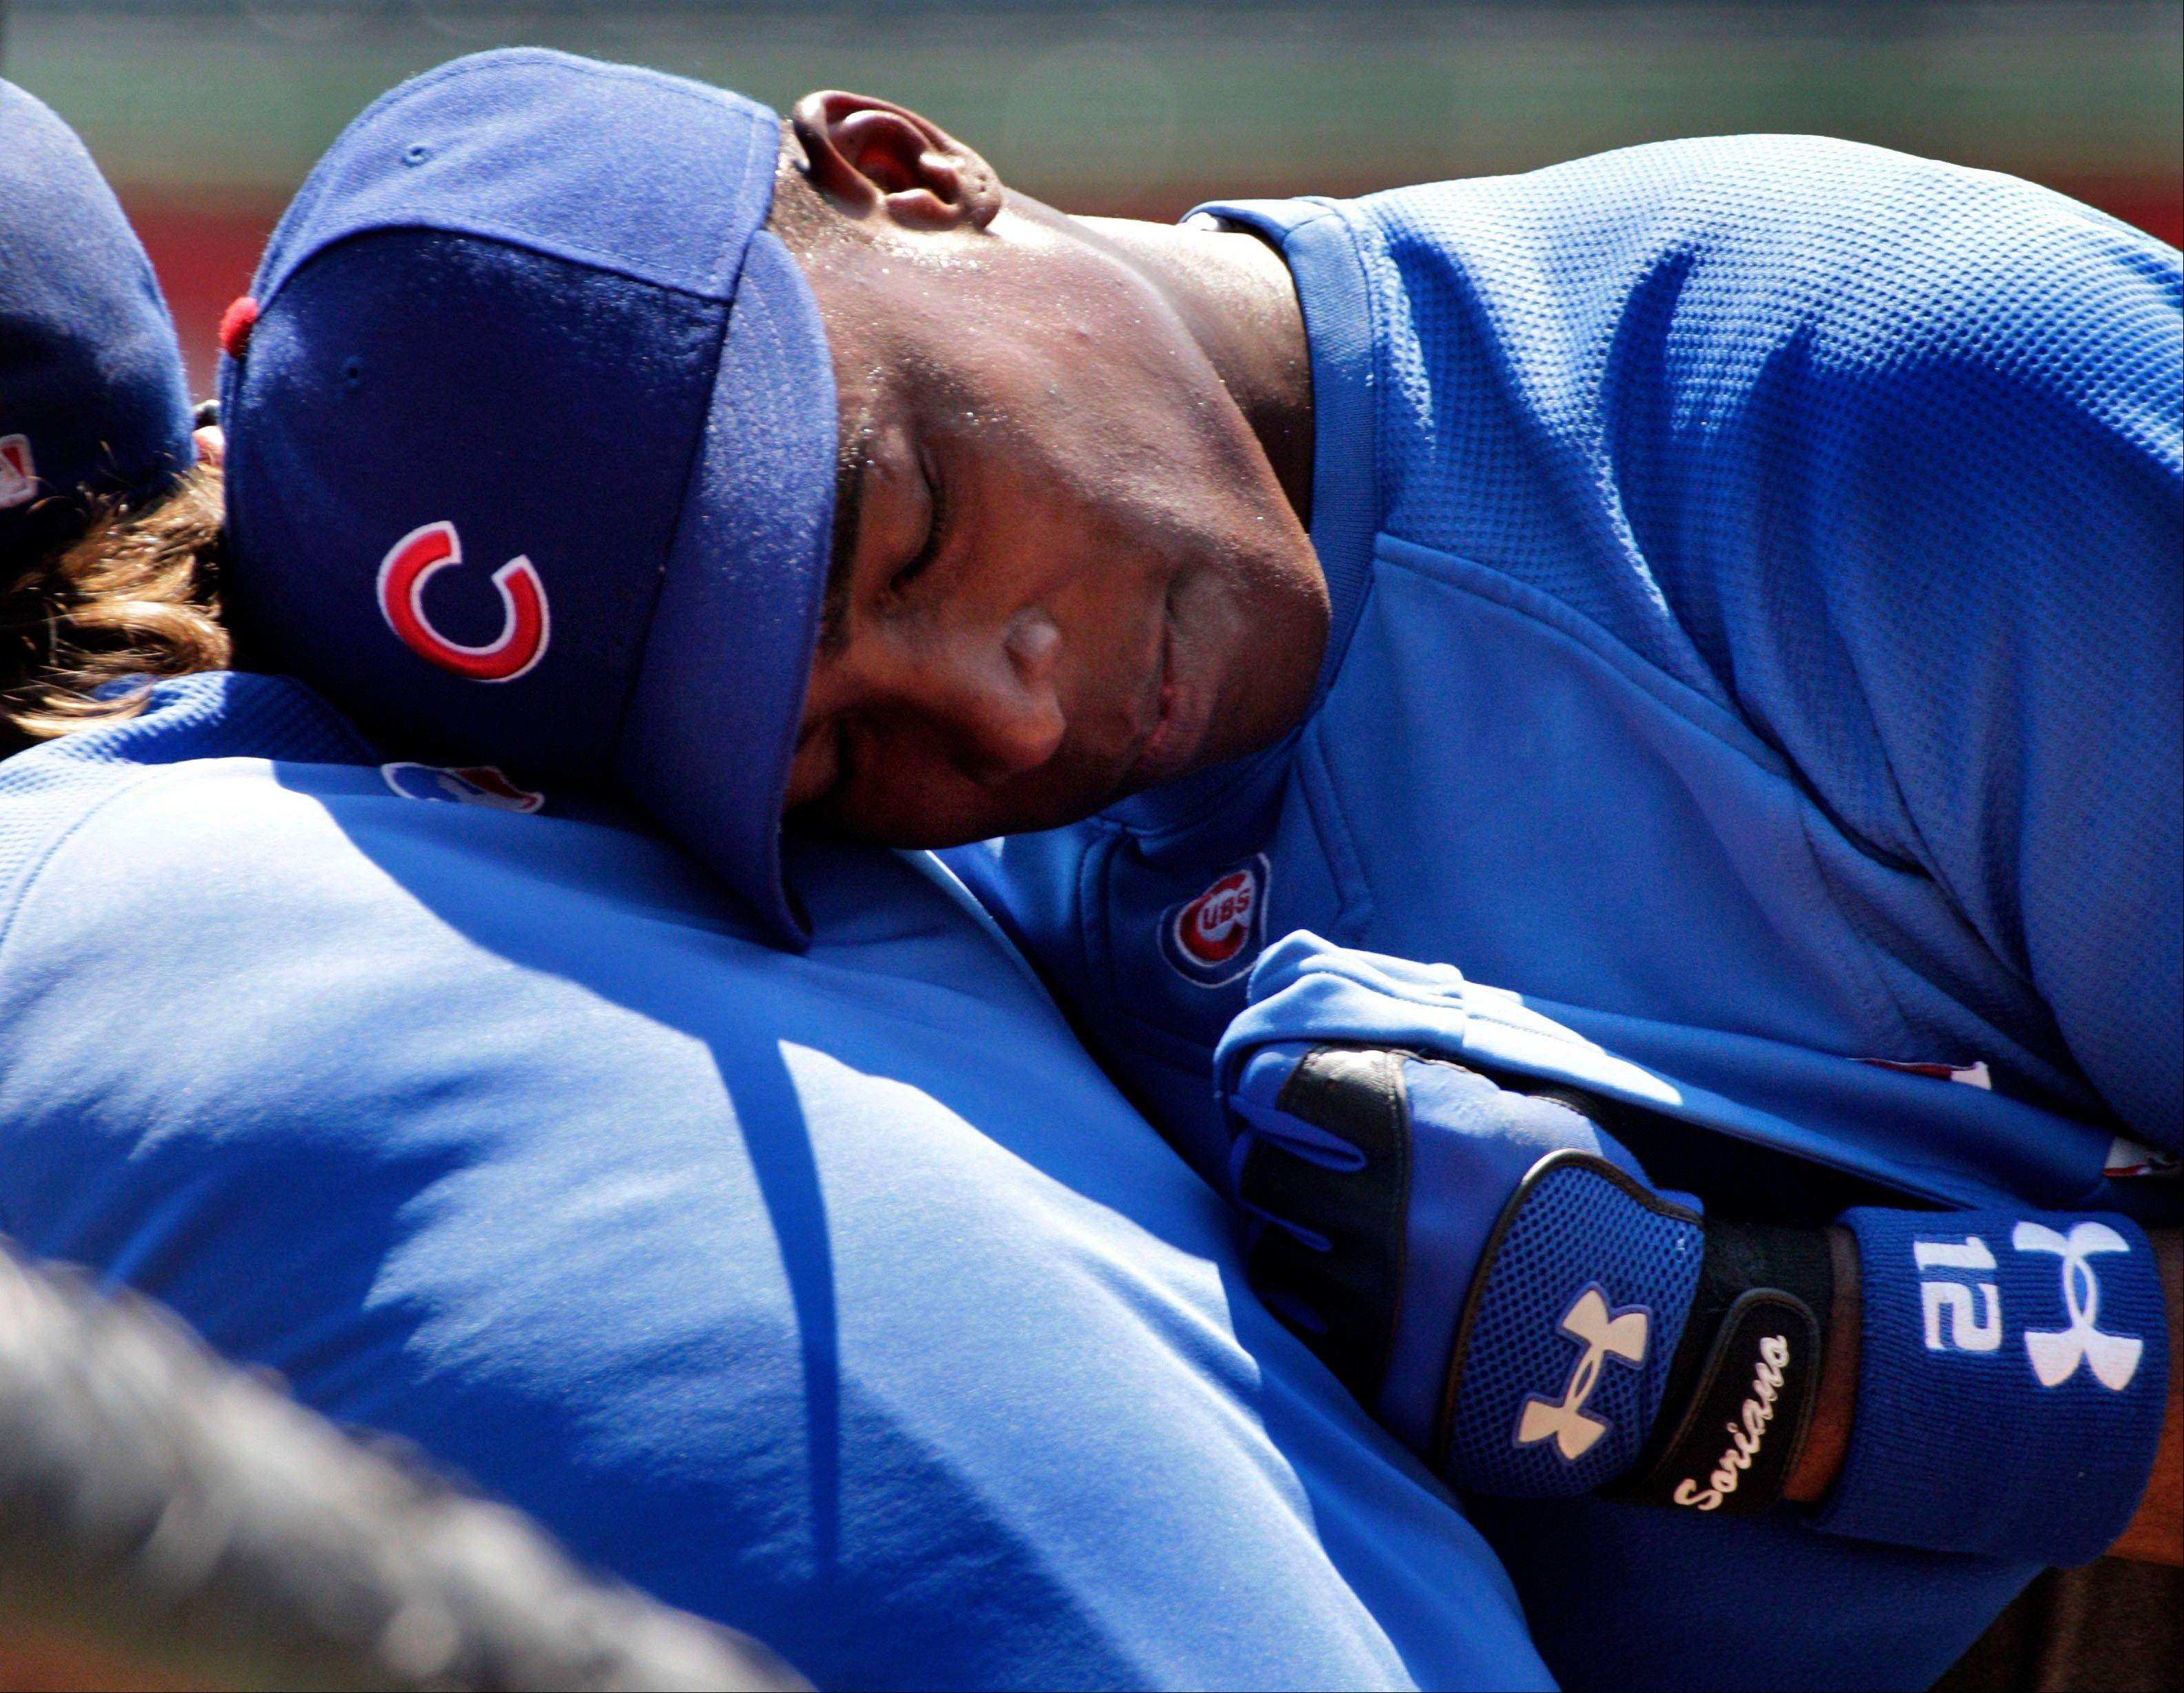 Cubs outfielder Alfonso Soriano leans on teammate Blake DeWitt on Sunday while waiting to hit during batting practice at PNC Park in Pittsburgh.